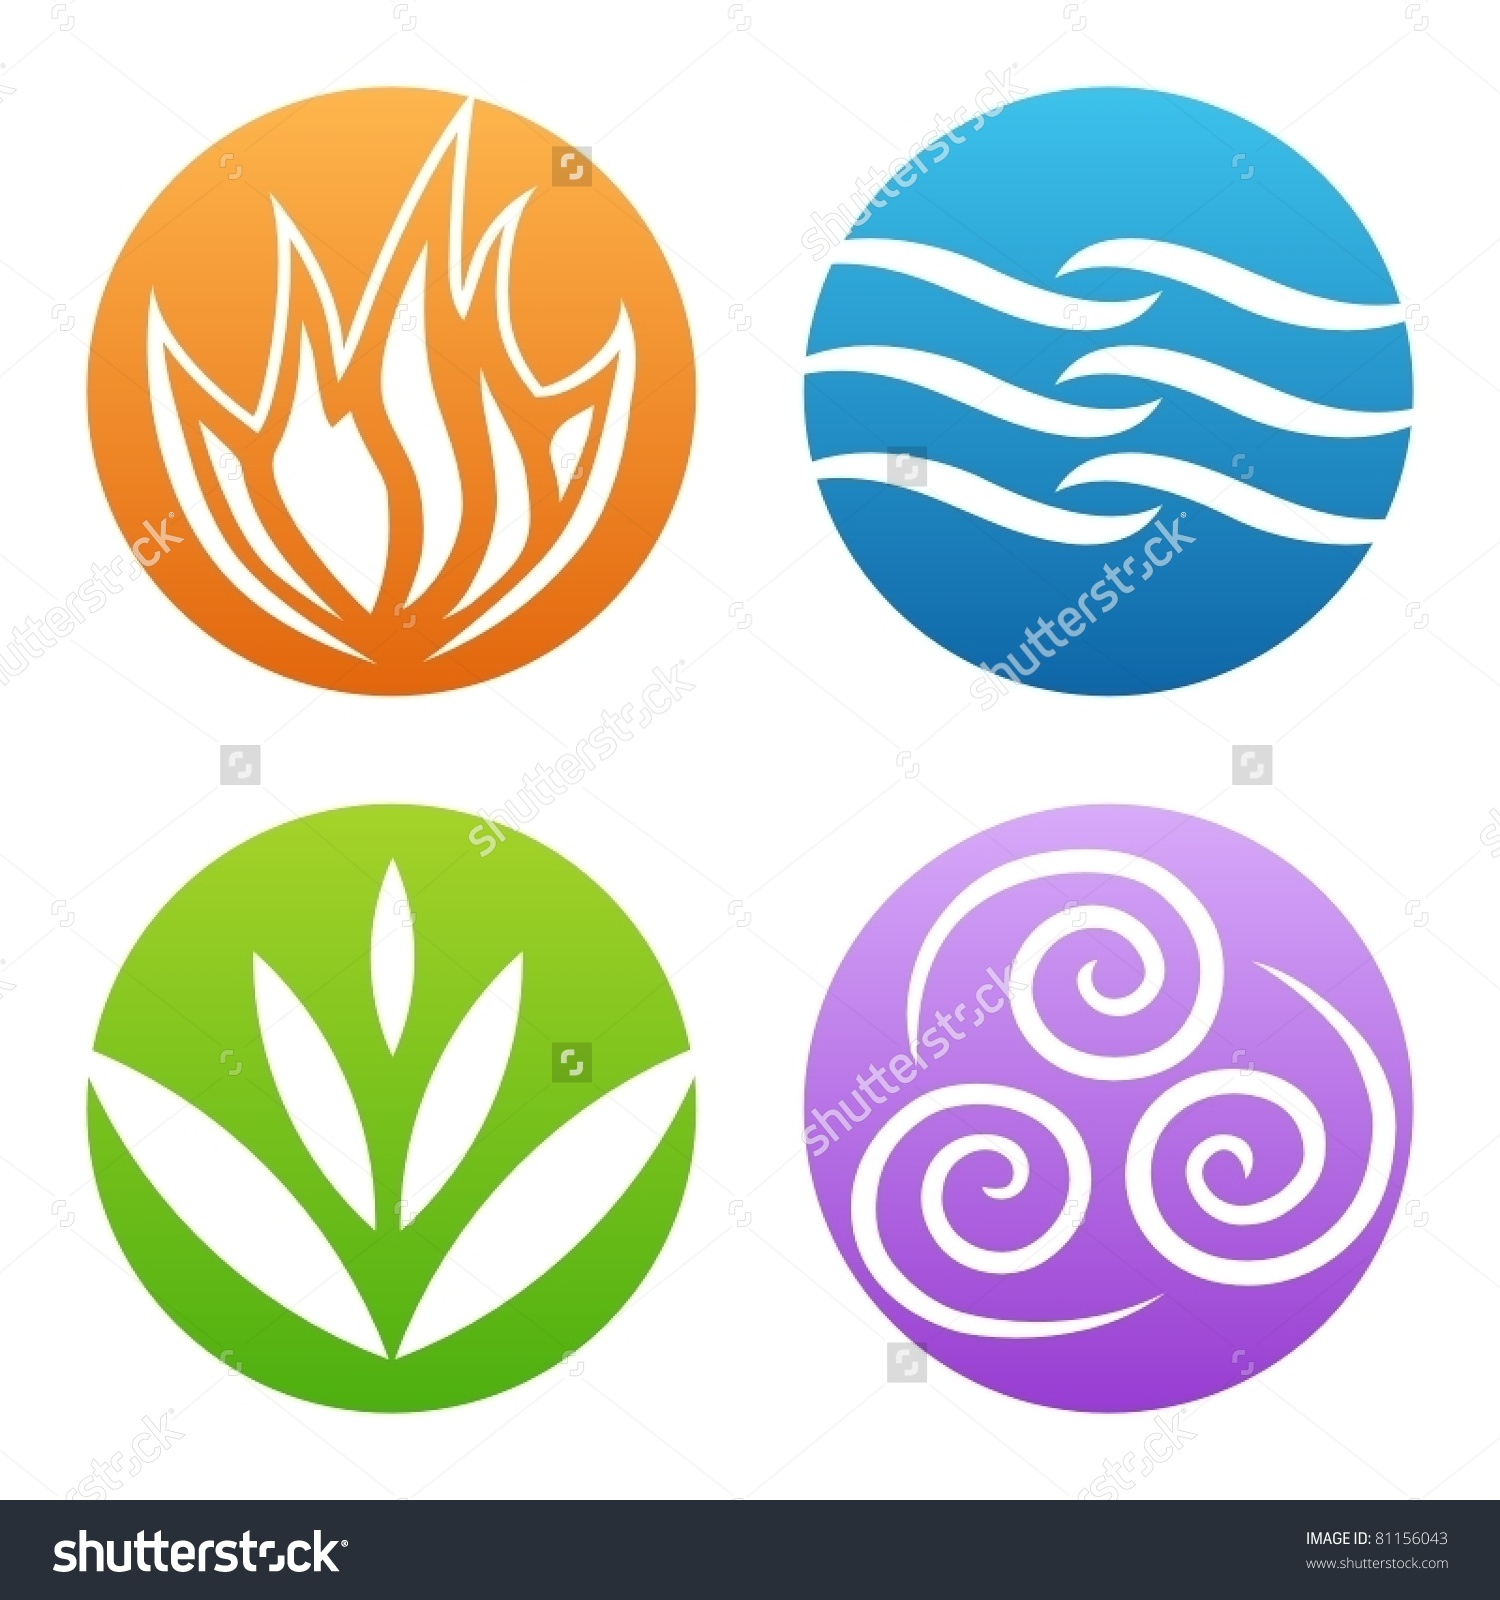 Elements clipart lead Fire Vector Fire & Shutterstock